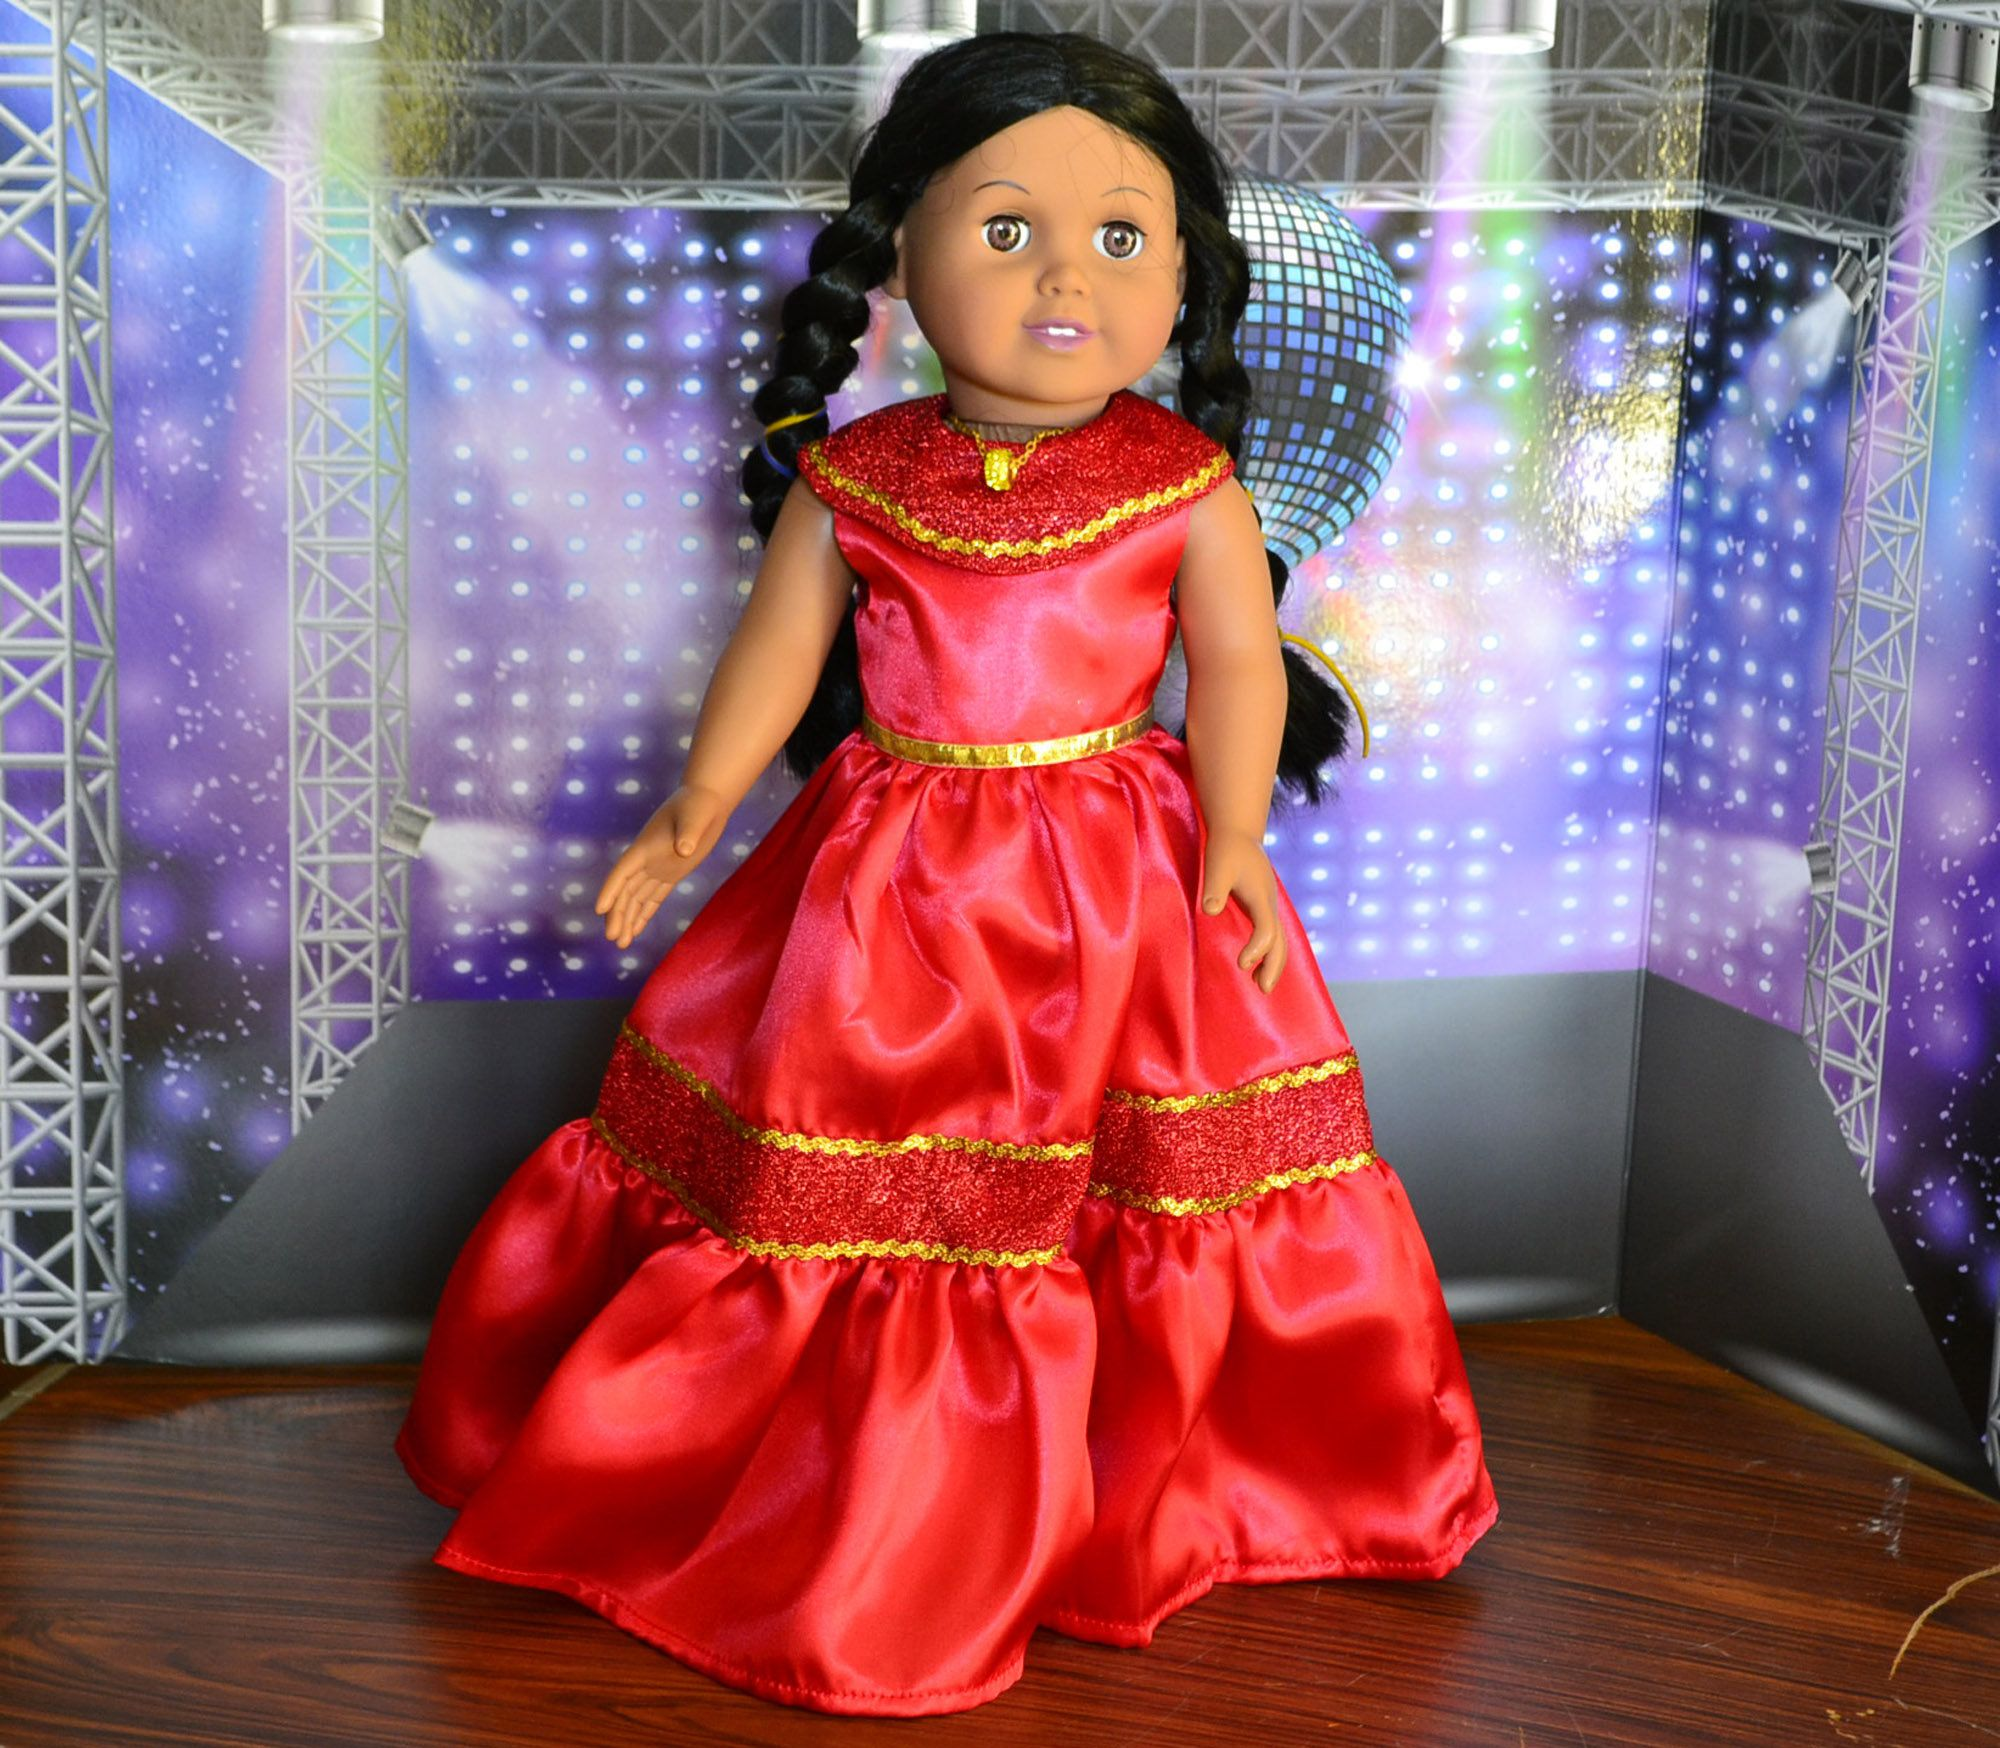 Red Long Dress 18 inch doll clothes for Elena American Girl, Madame Alexander Doll Clothes #18inchdollsandclothes